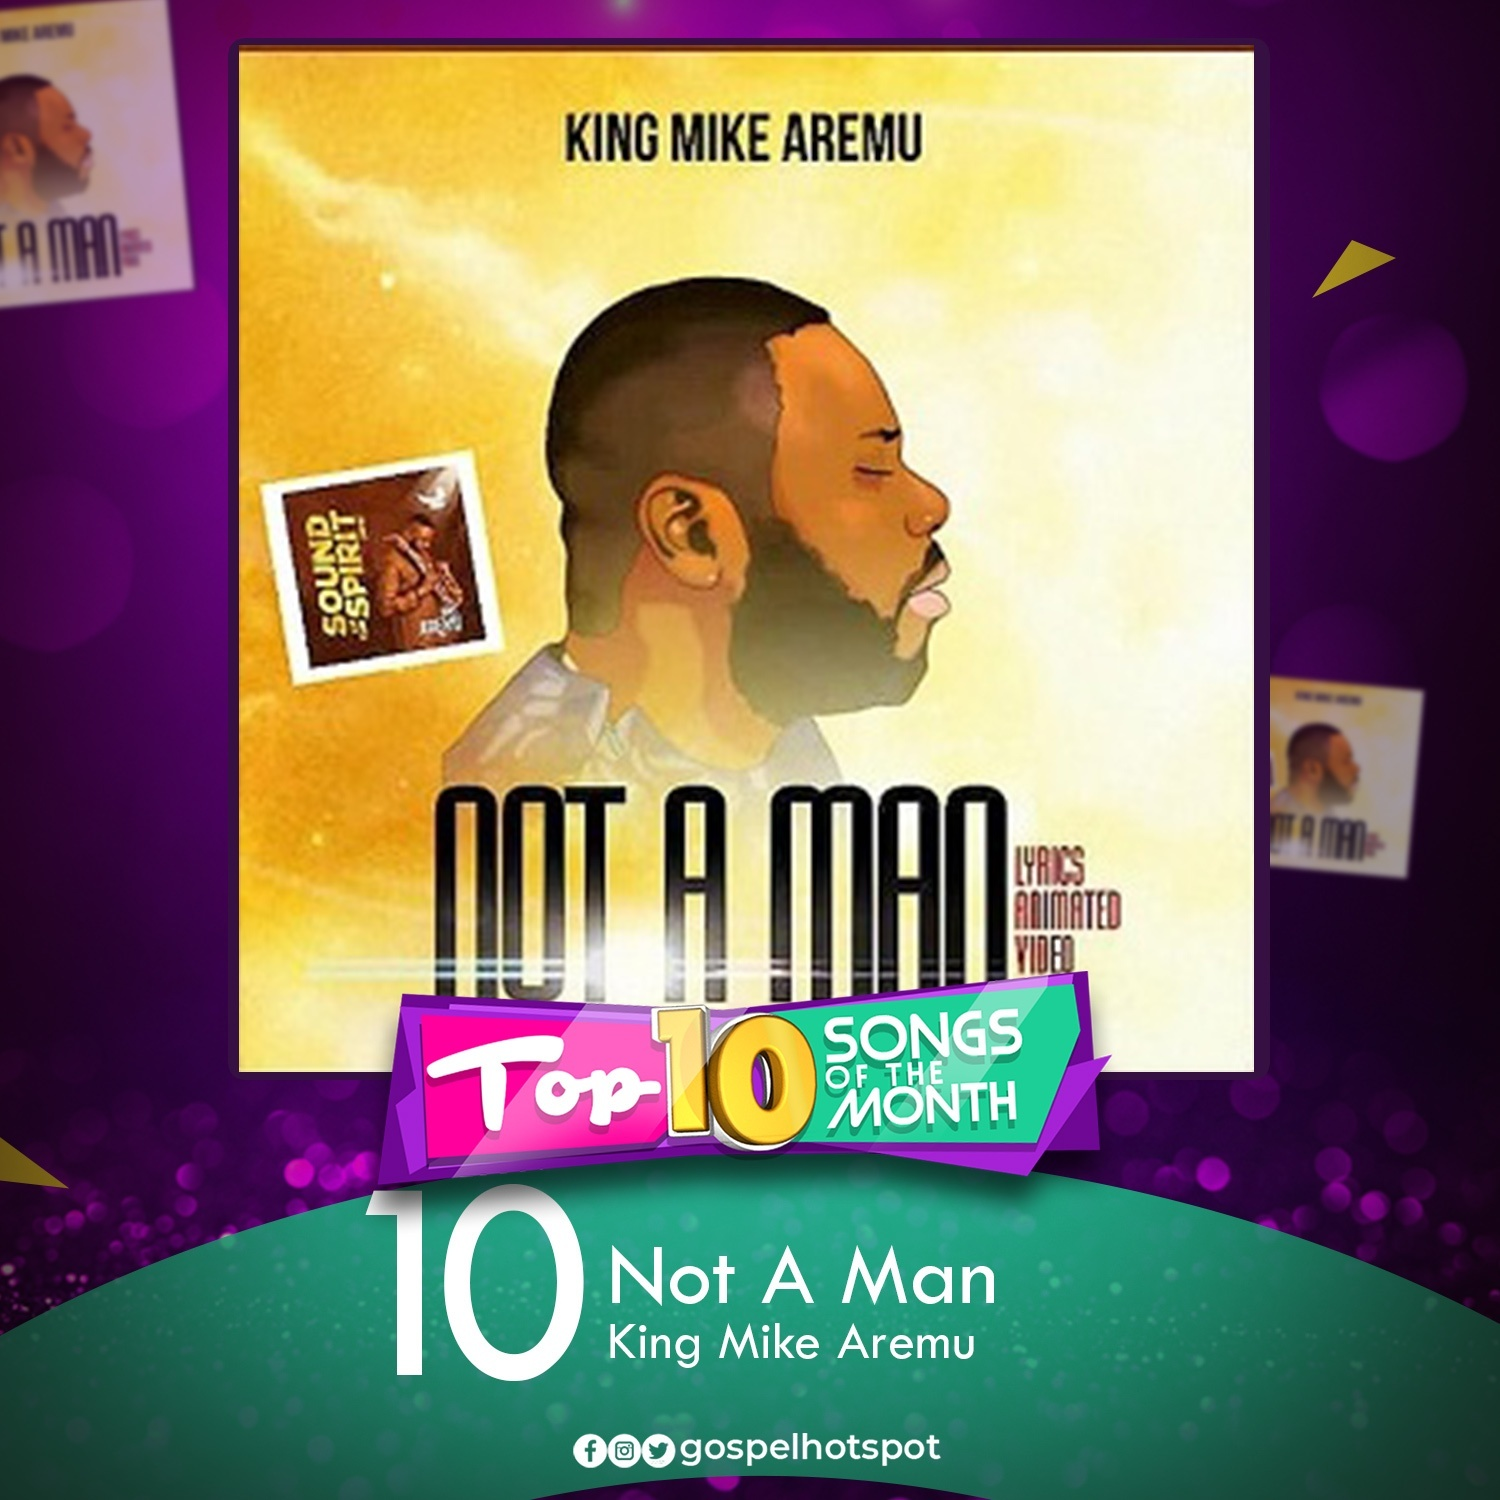 Not A Man – King Mike Aremu